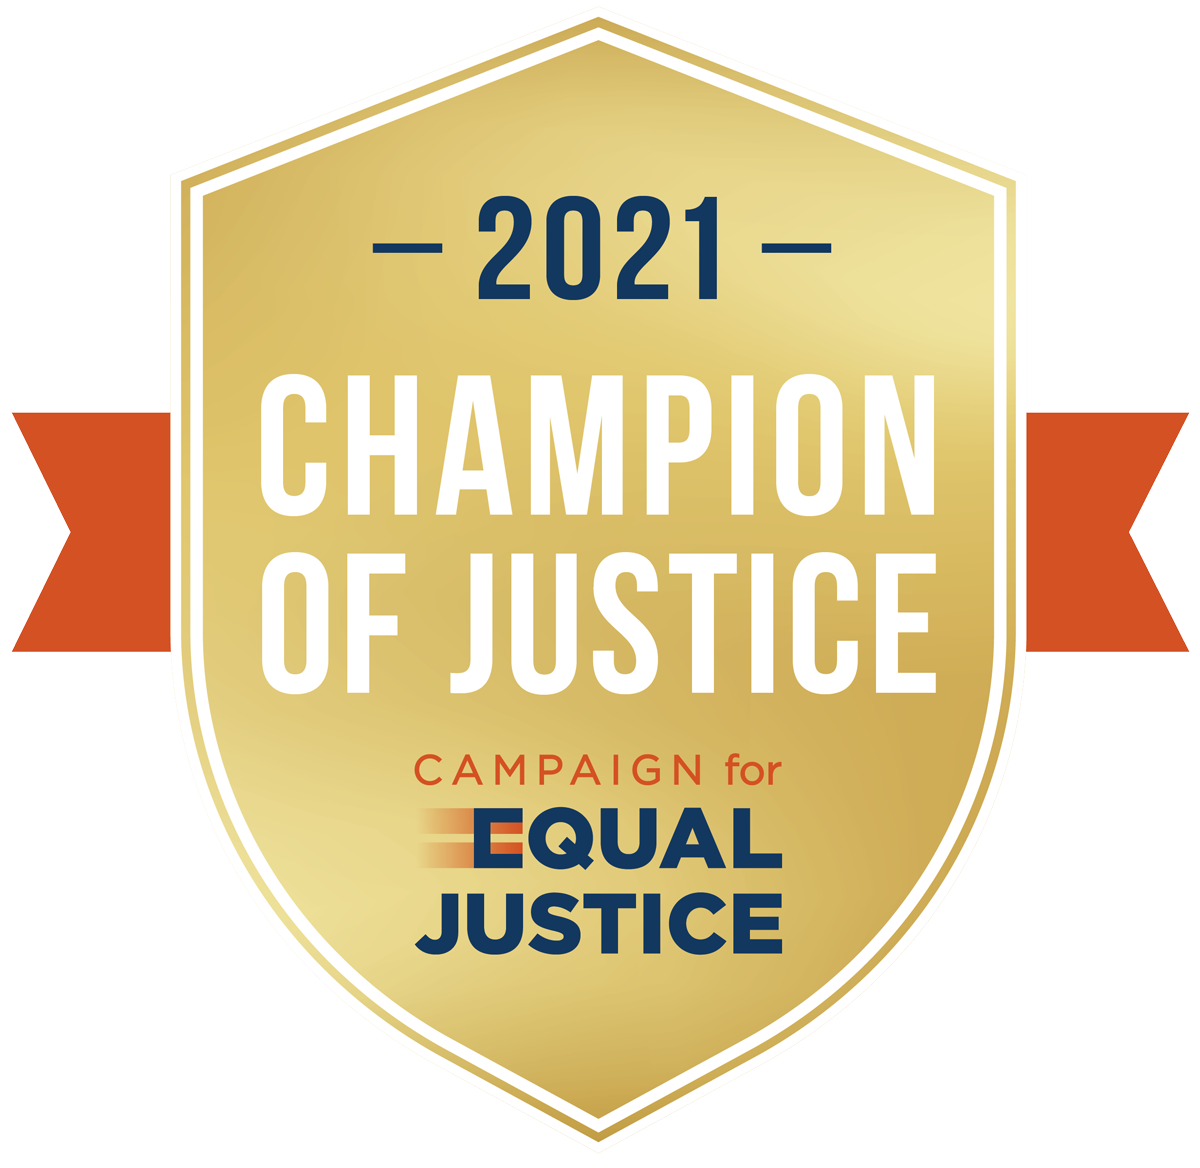 2021 Champion of Justice web seal: Campaign for Equal Justice